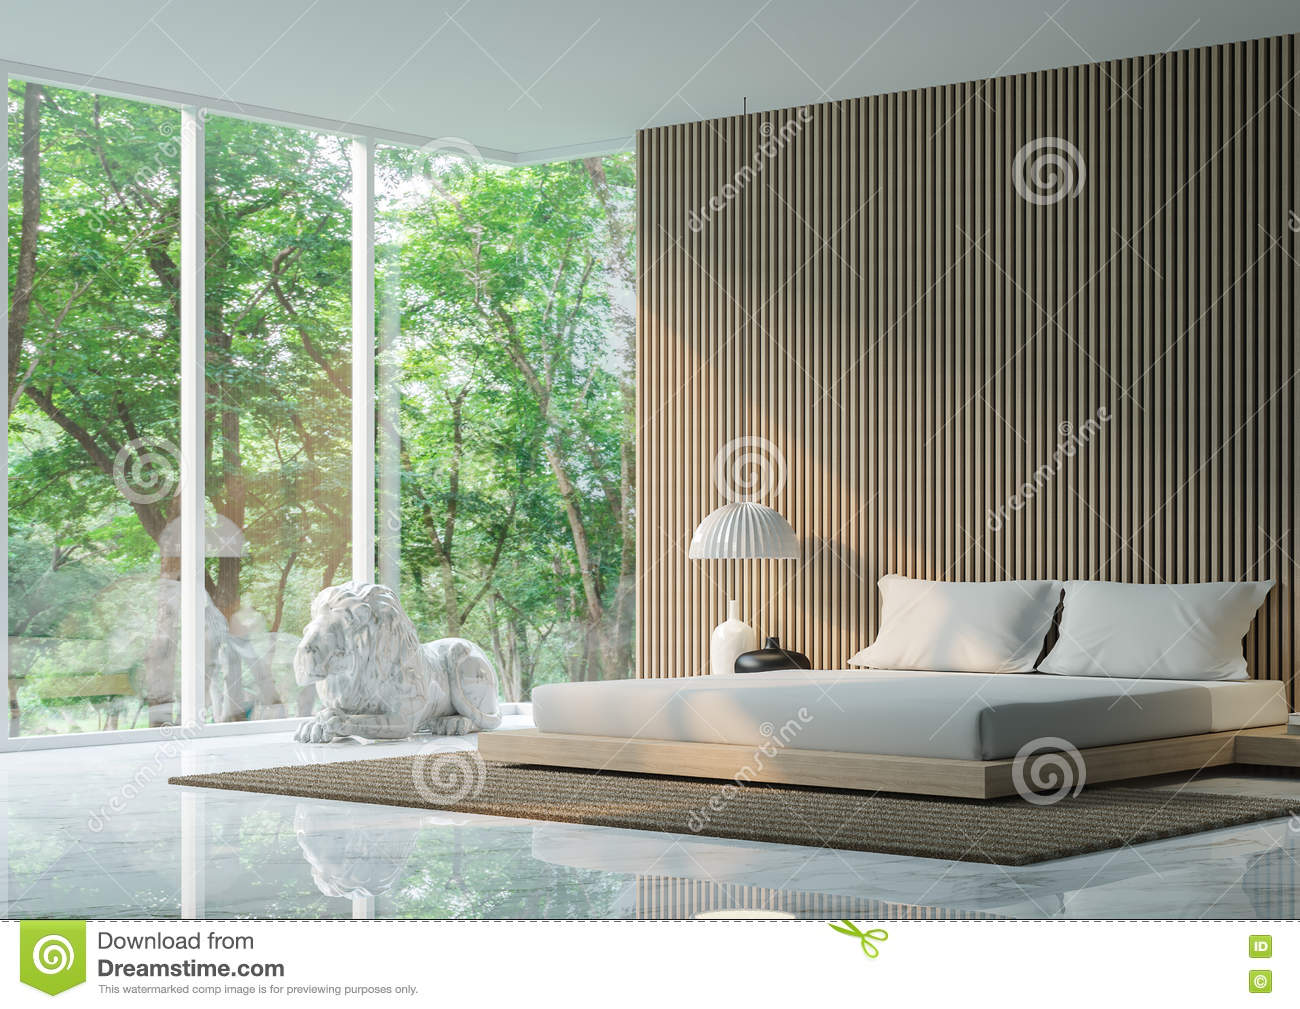 Peaceful Bedroom Modern Peaceful Bedroom In The Forest Stock Illustration Image